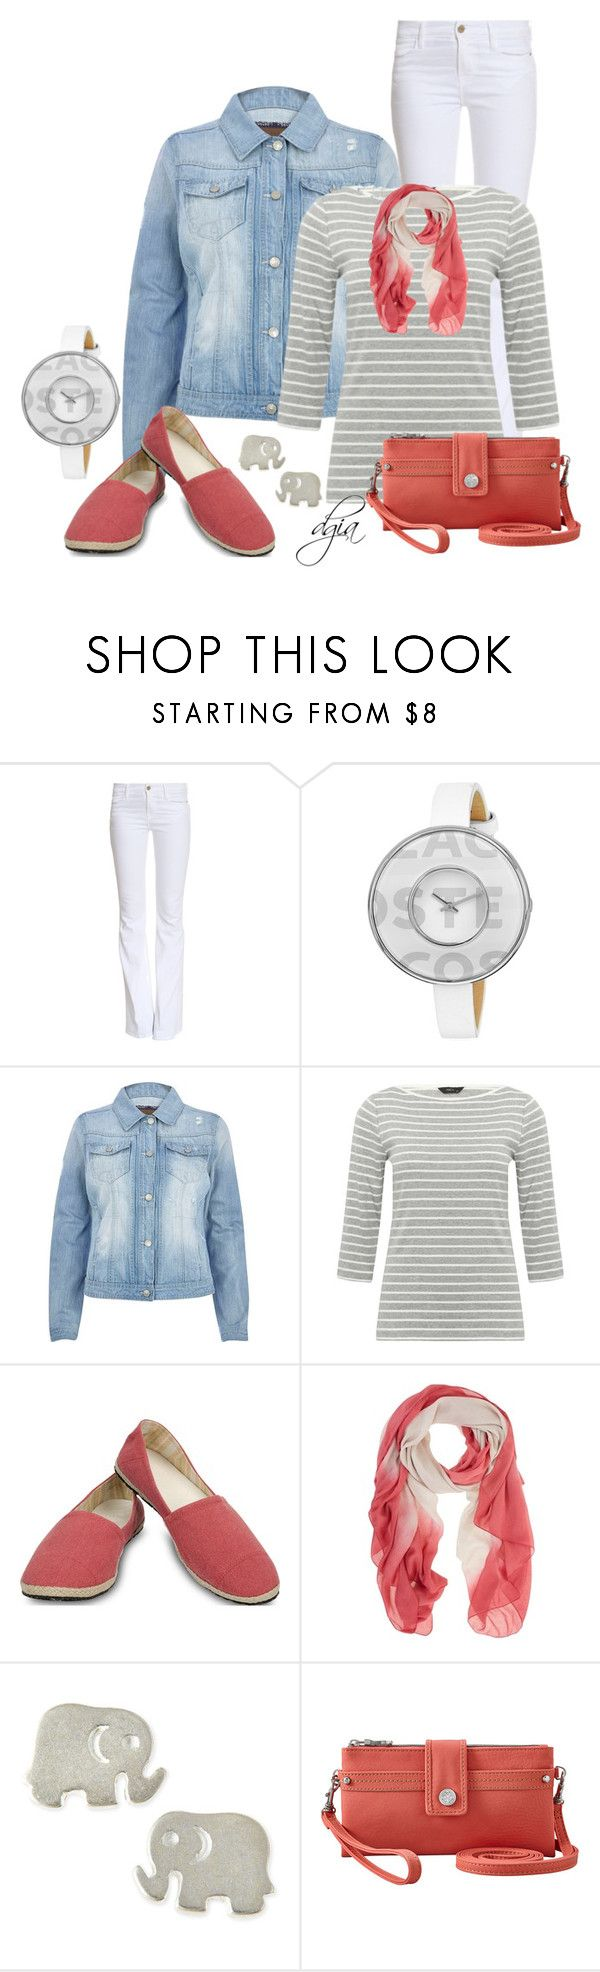 """""""River Island Light wash denim jacket"""" by dgia ❤ liked on Polyvore featuring Frame, Lacoste, River Island, M&Co, Ocean Minded, Mint Velvet, Dogeared and Relic"""